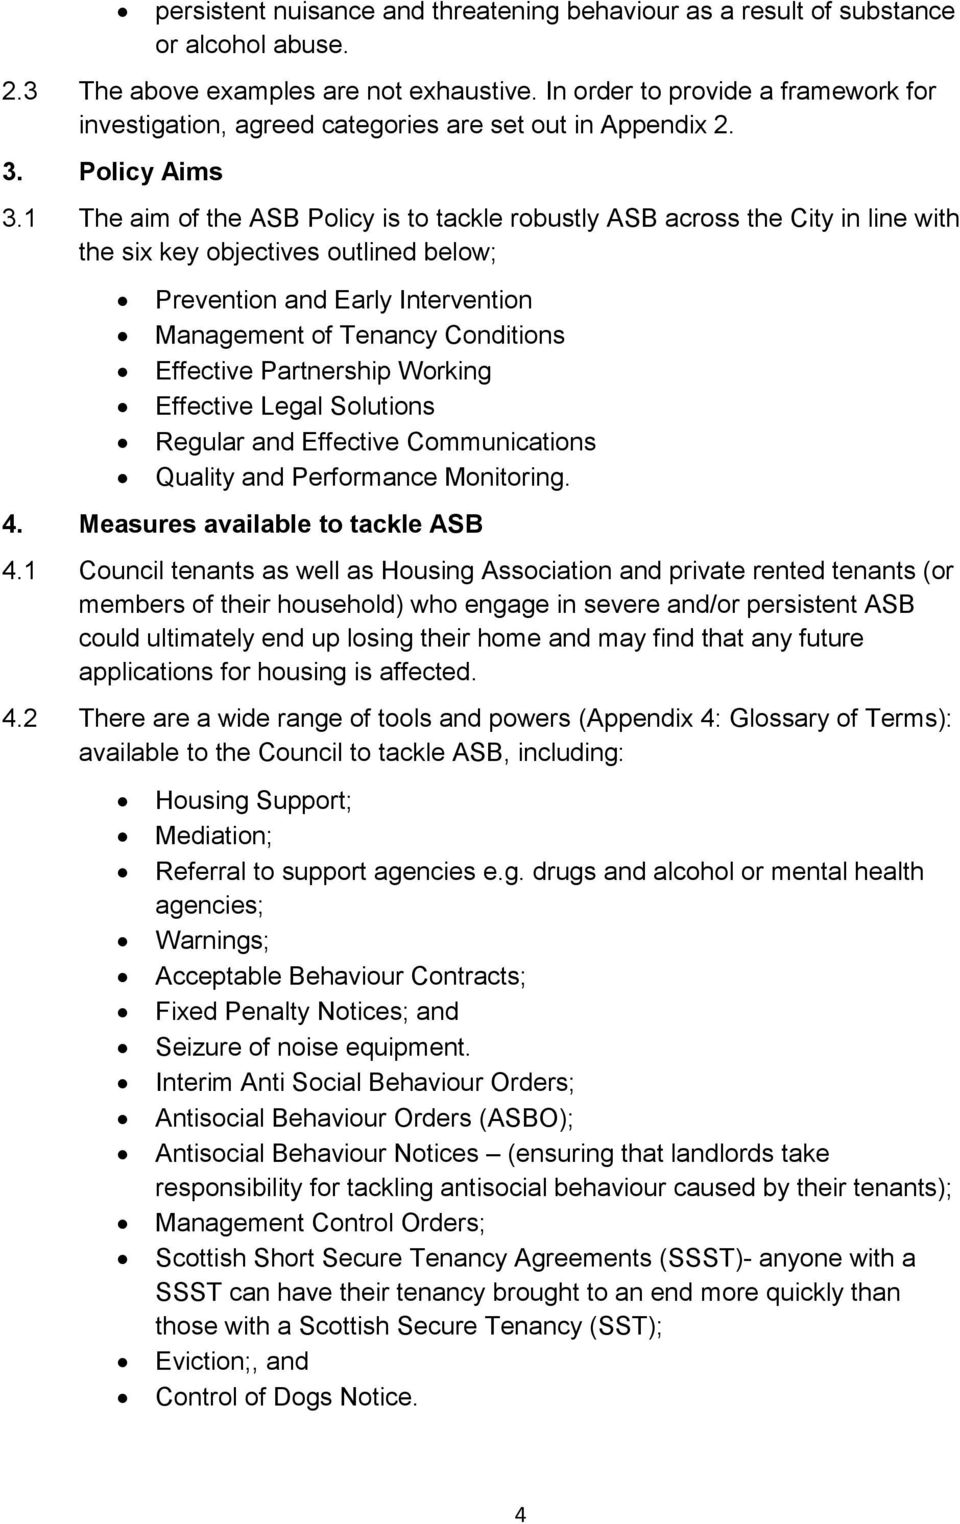 1 The aim of the ASB Policy is to tackle robustly ASB across the City in line with the six key objectives outlined below; Prevention and Early Intervention Management of Tenancy Conditions Effective